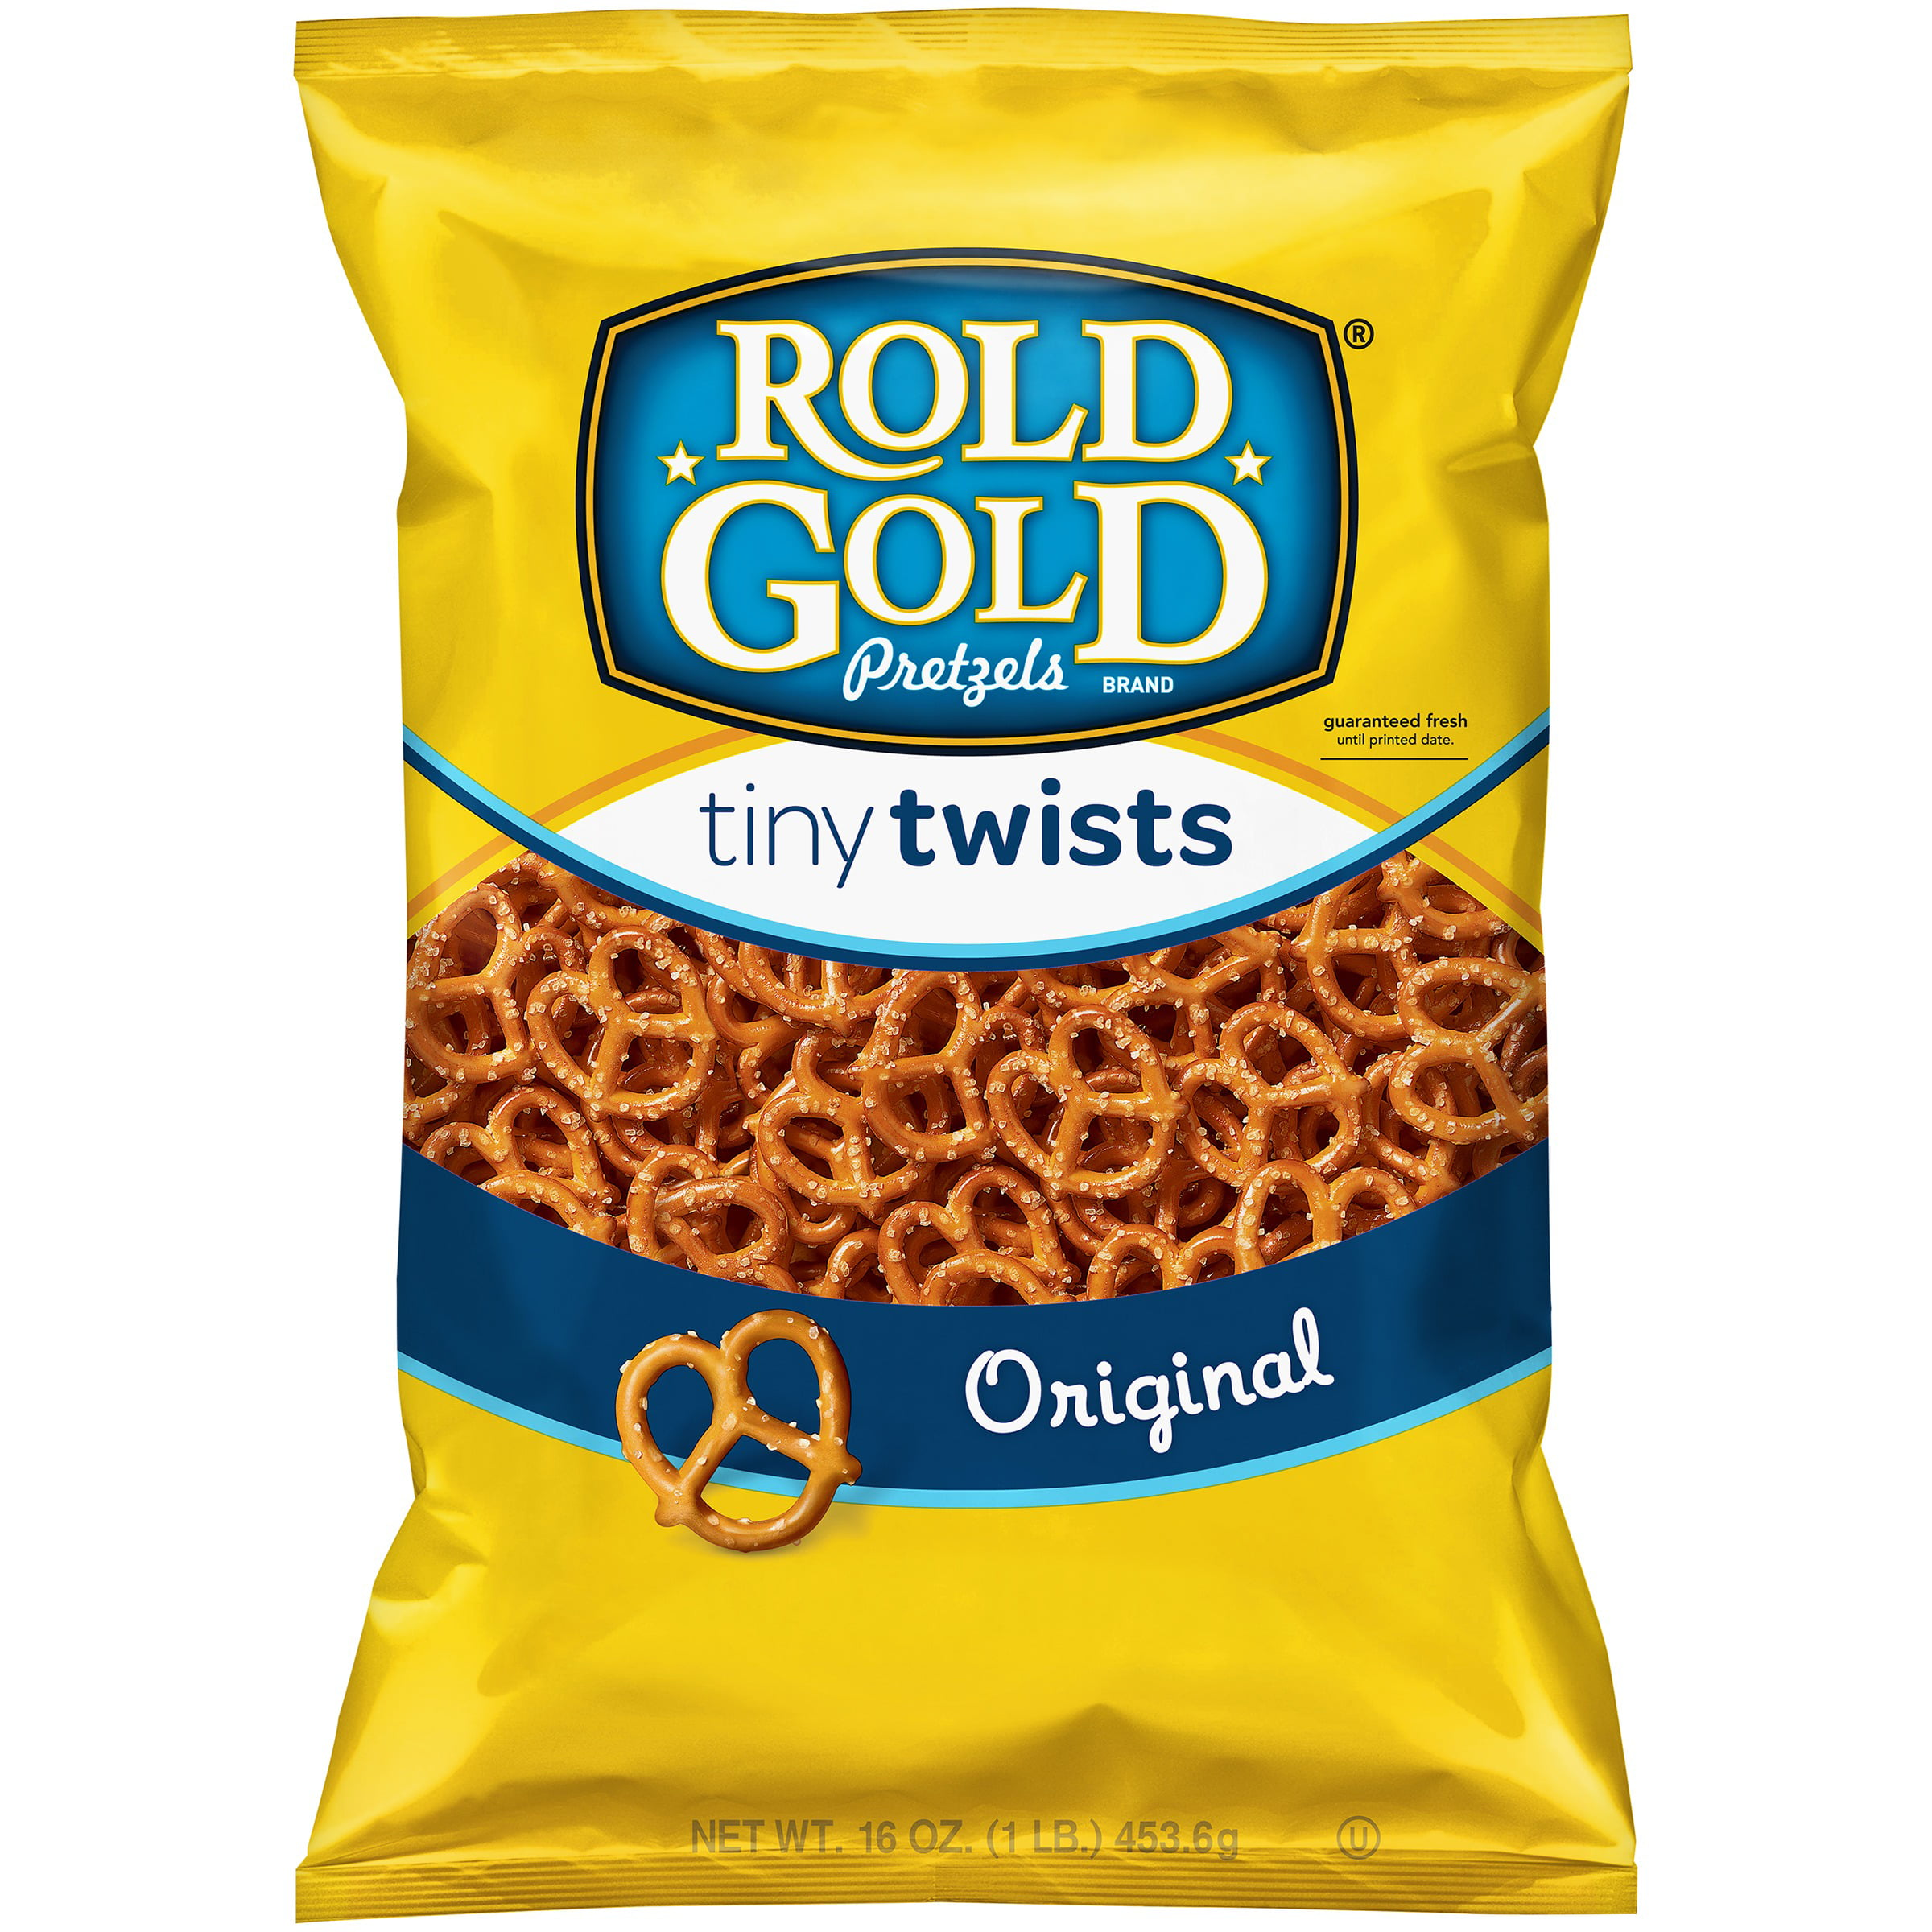 Rold Gold Tiny Twists Original Pretzels 16.0 oz. Bag by Frito-Lay, Inc.